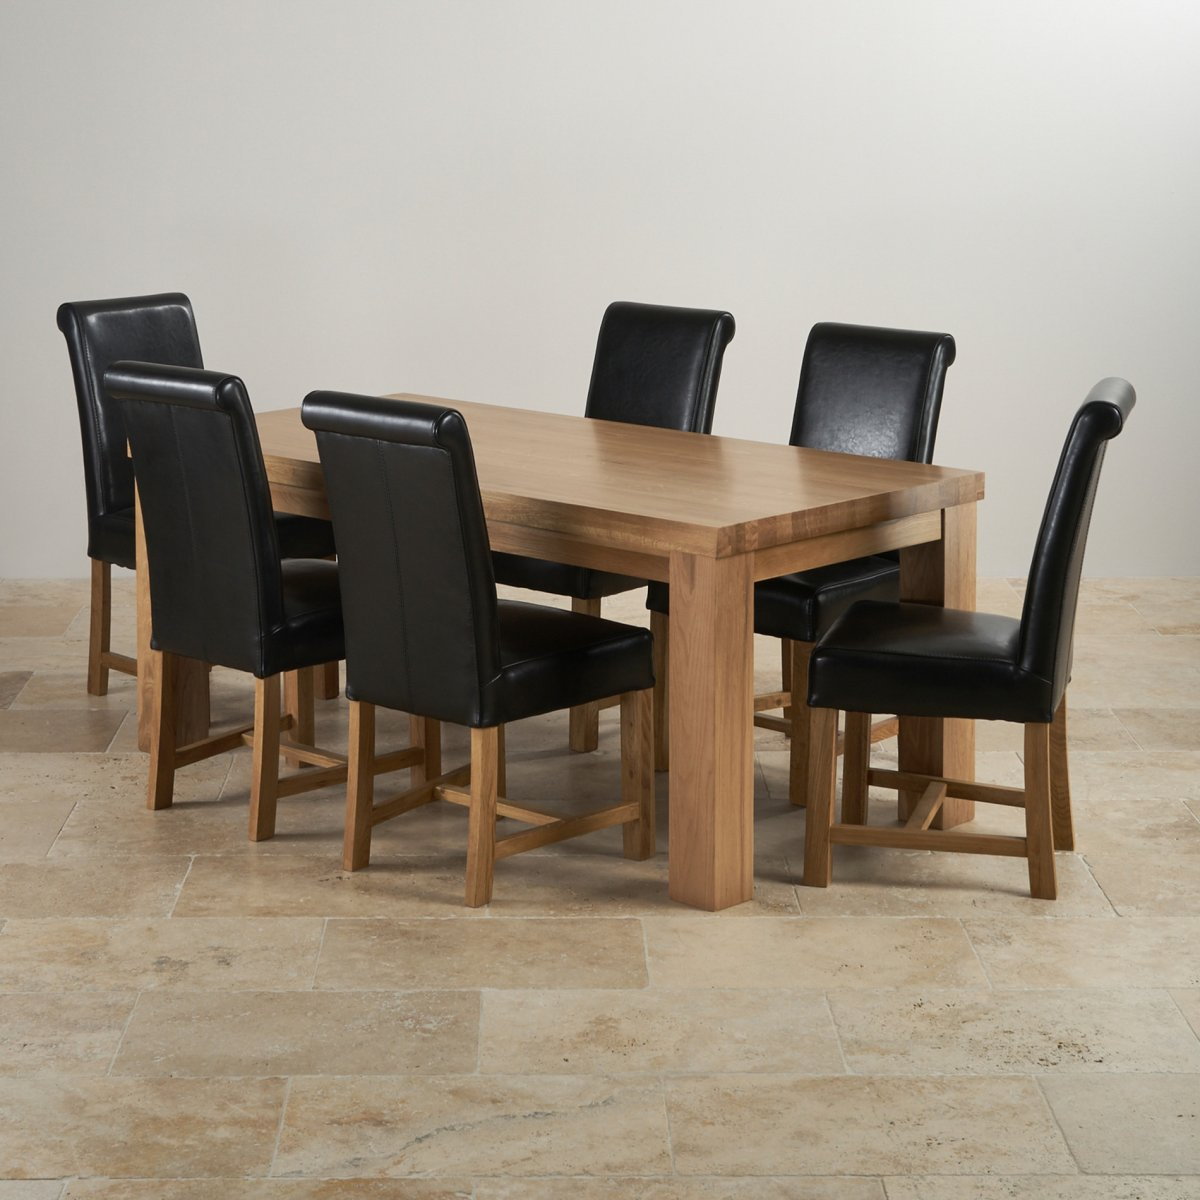 Oak Table And Chairs ~ Chunky dining set in oak ft quot table black chairs